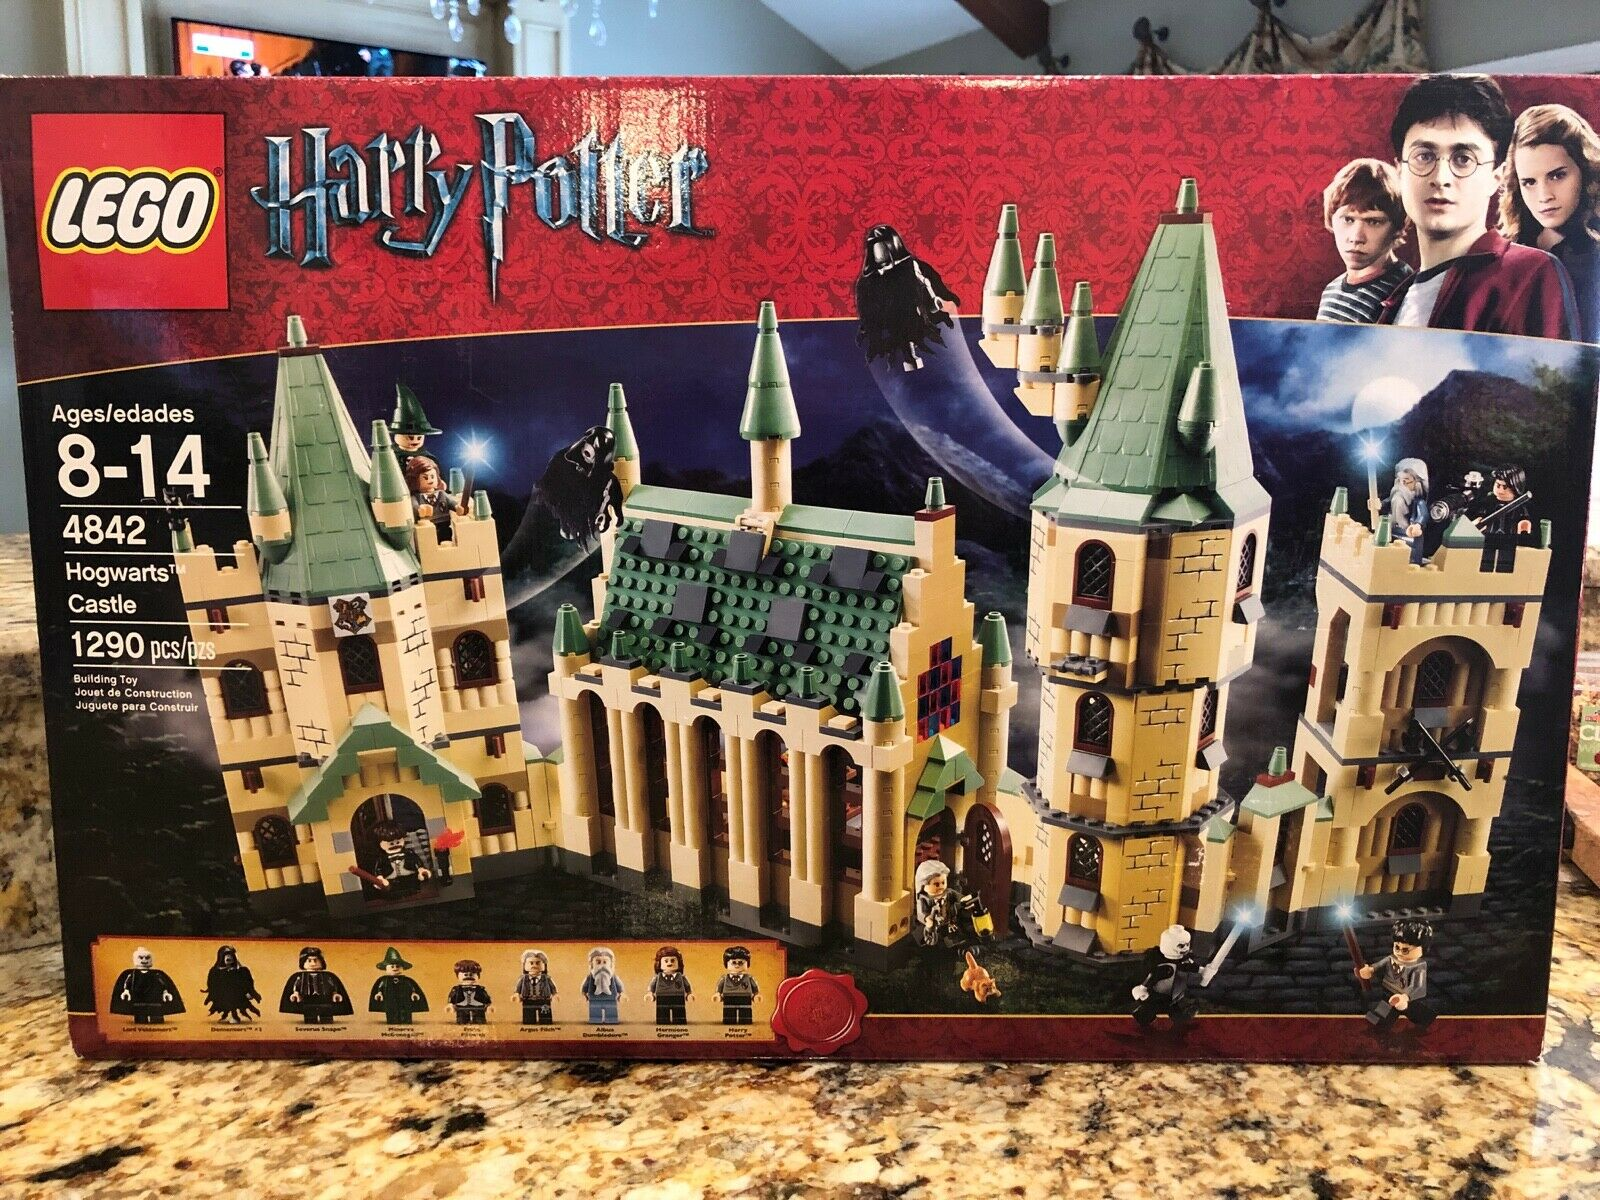 LEGO 4842 HOGWARTS CASTLE BRAND NEW-ALL BAGS ARE FACTORY SEALED, BOX OPENED